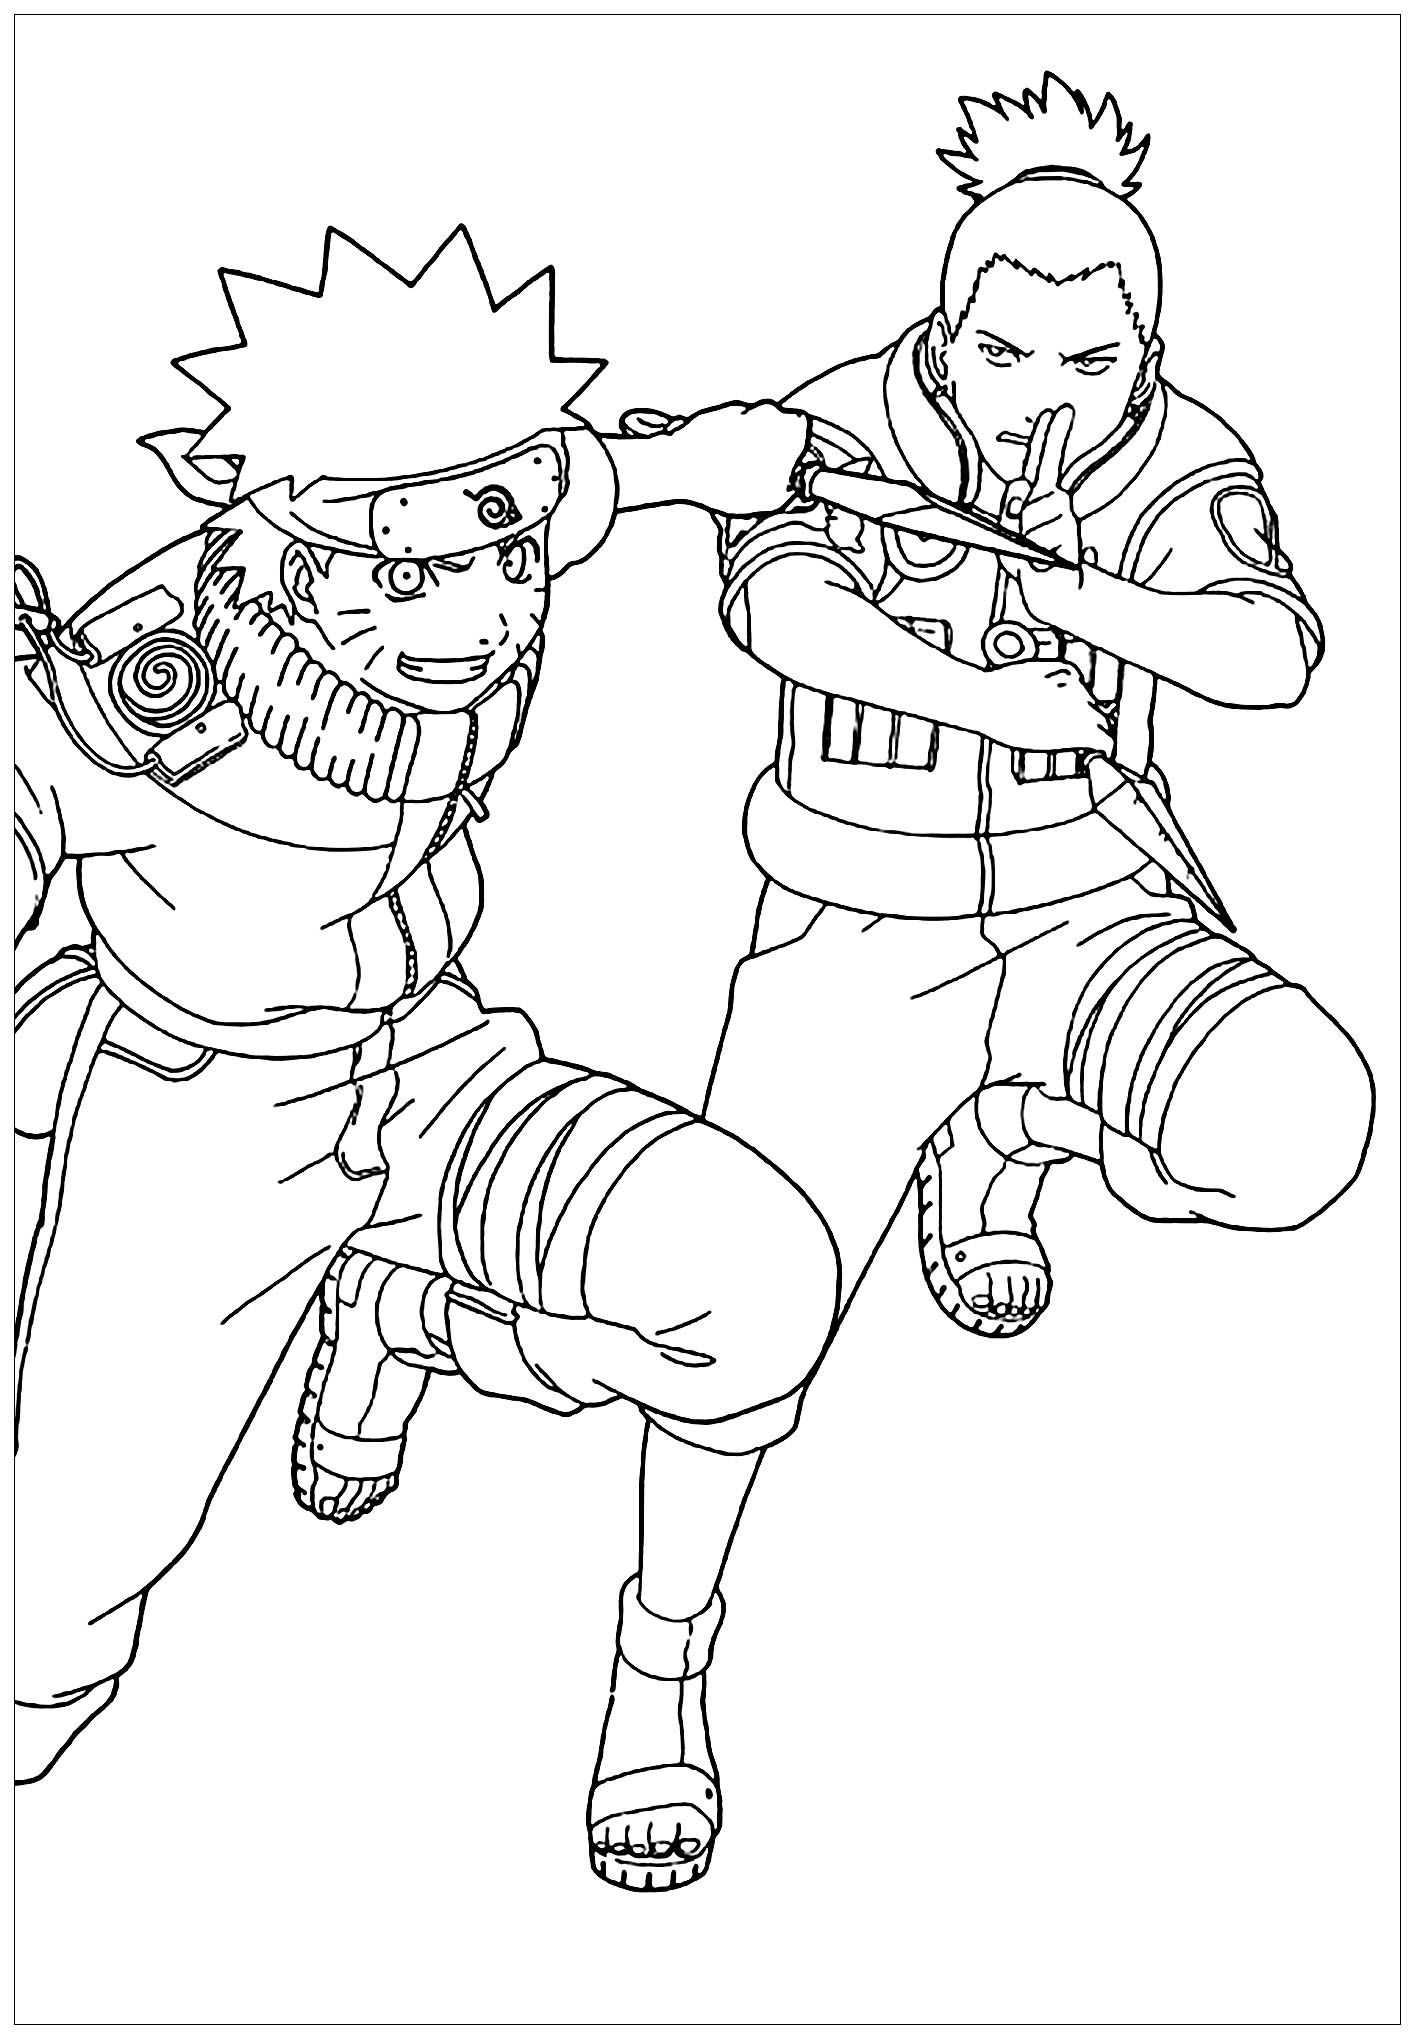 naruto coloring images coloring pages of naruto shippuden characters printable coloring naruto images